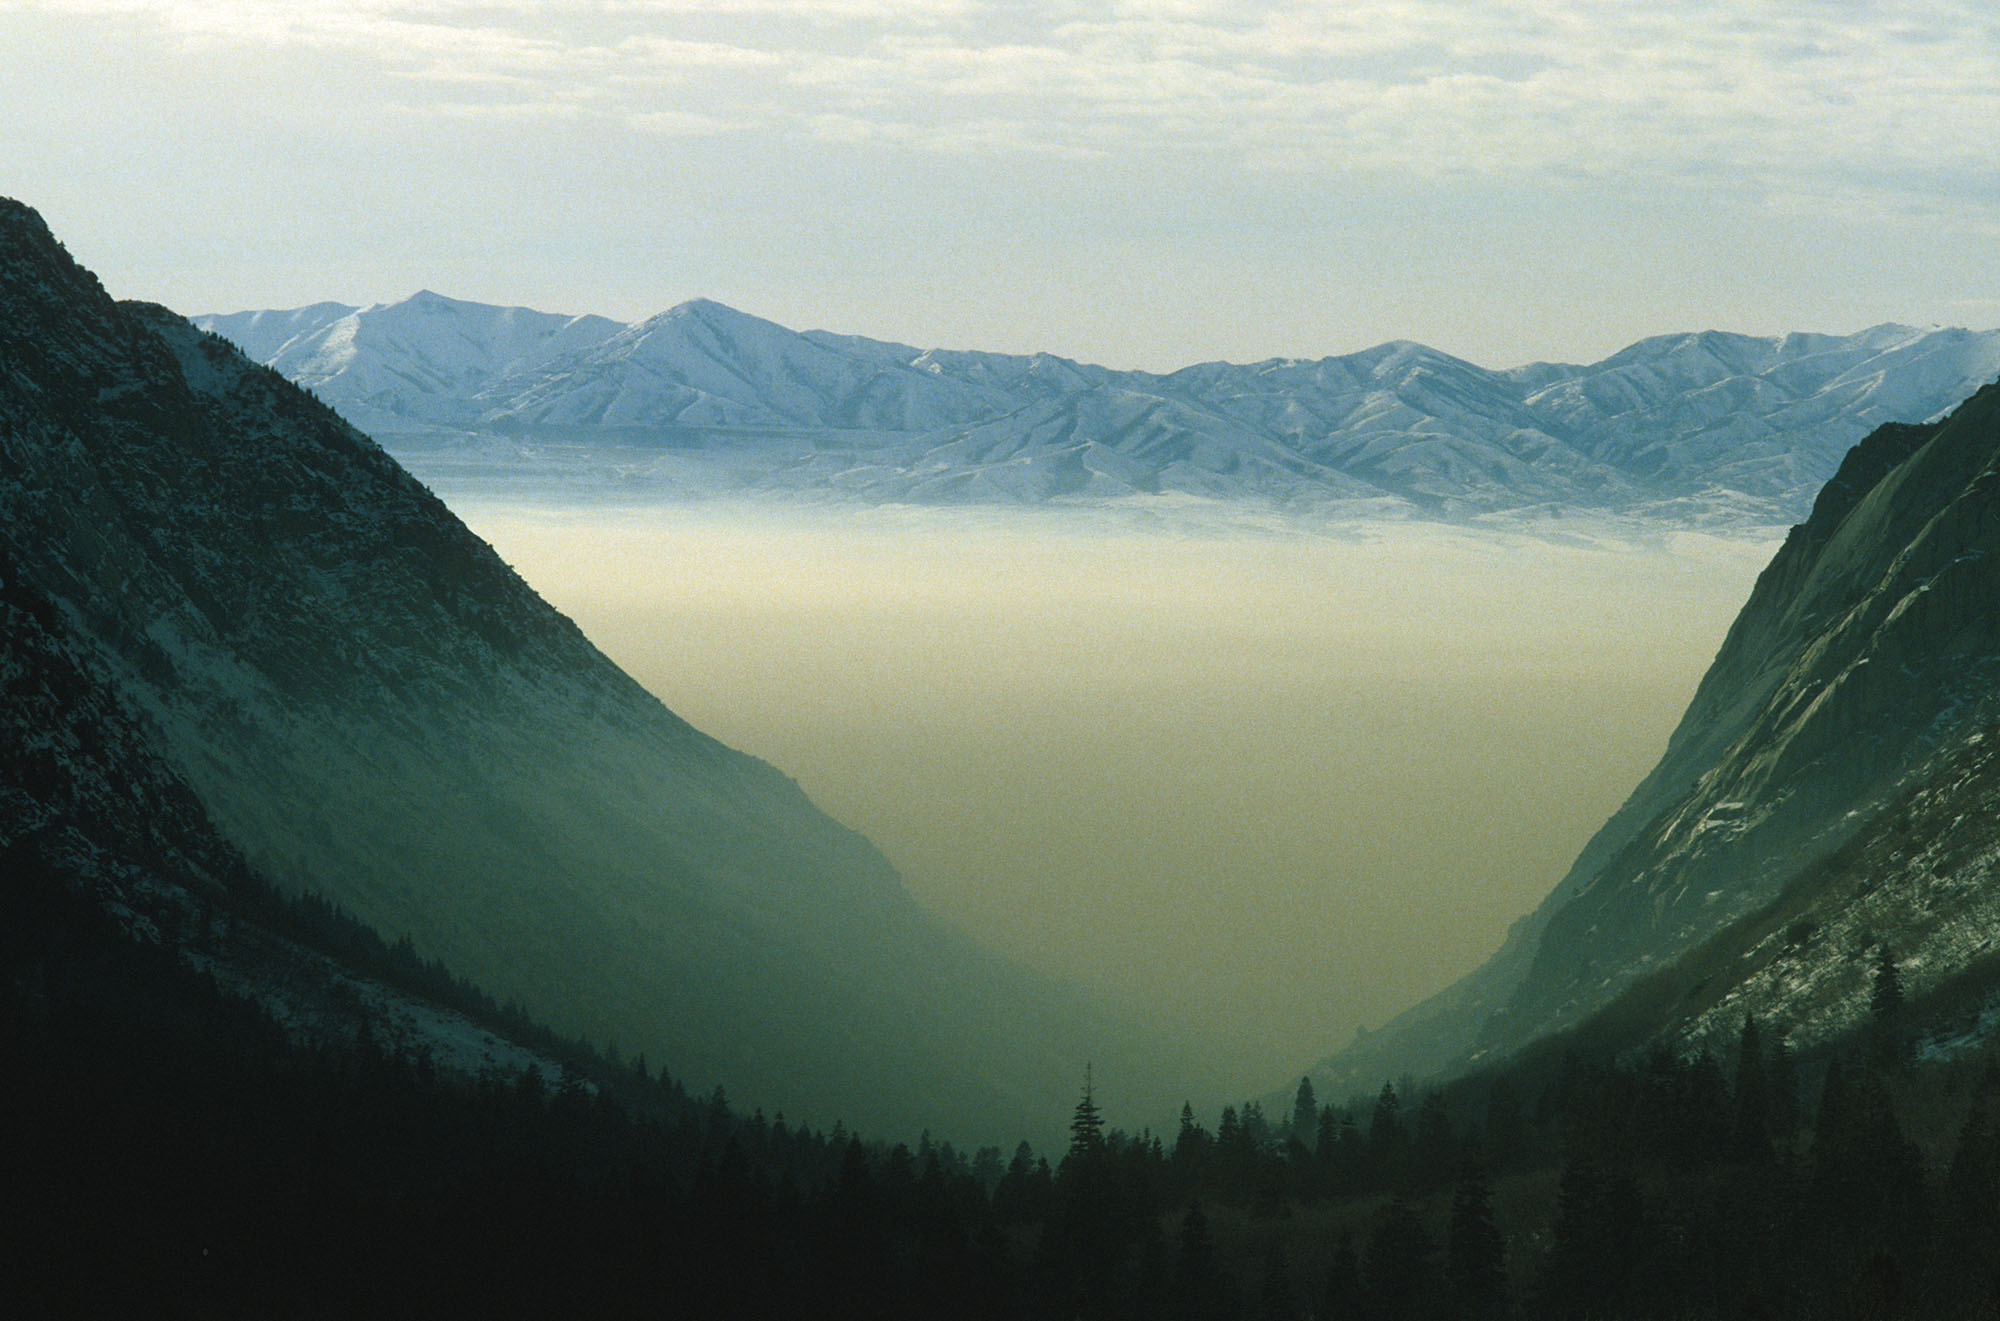 Salt Lake City, UT = 7th Worst Air Quality in USA, Says American Lung Association